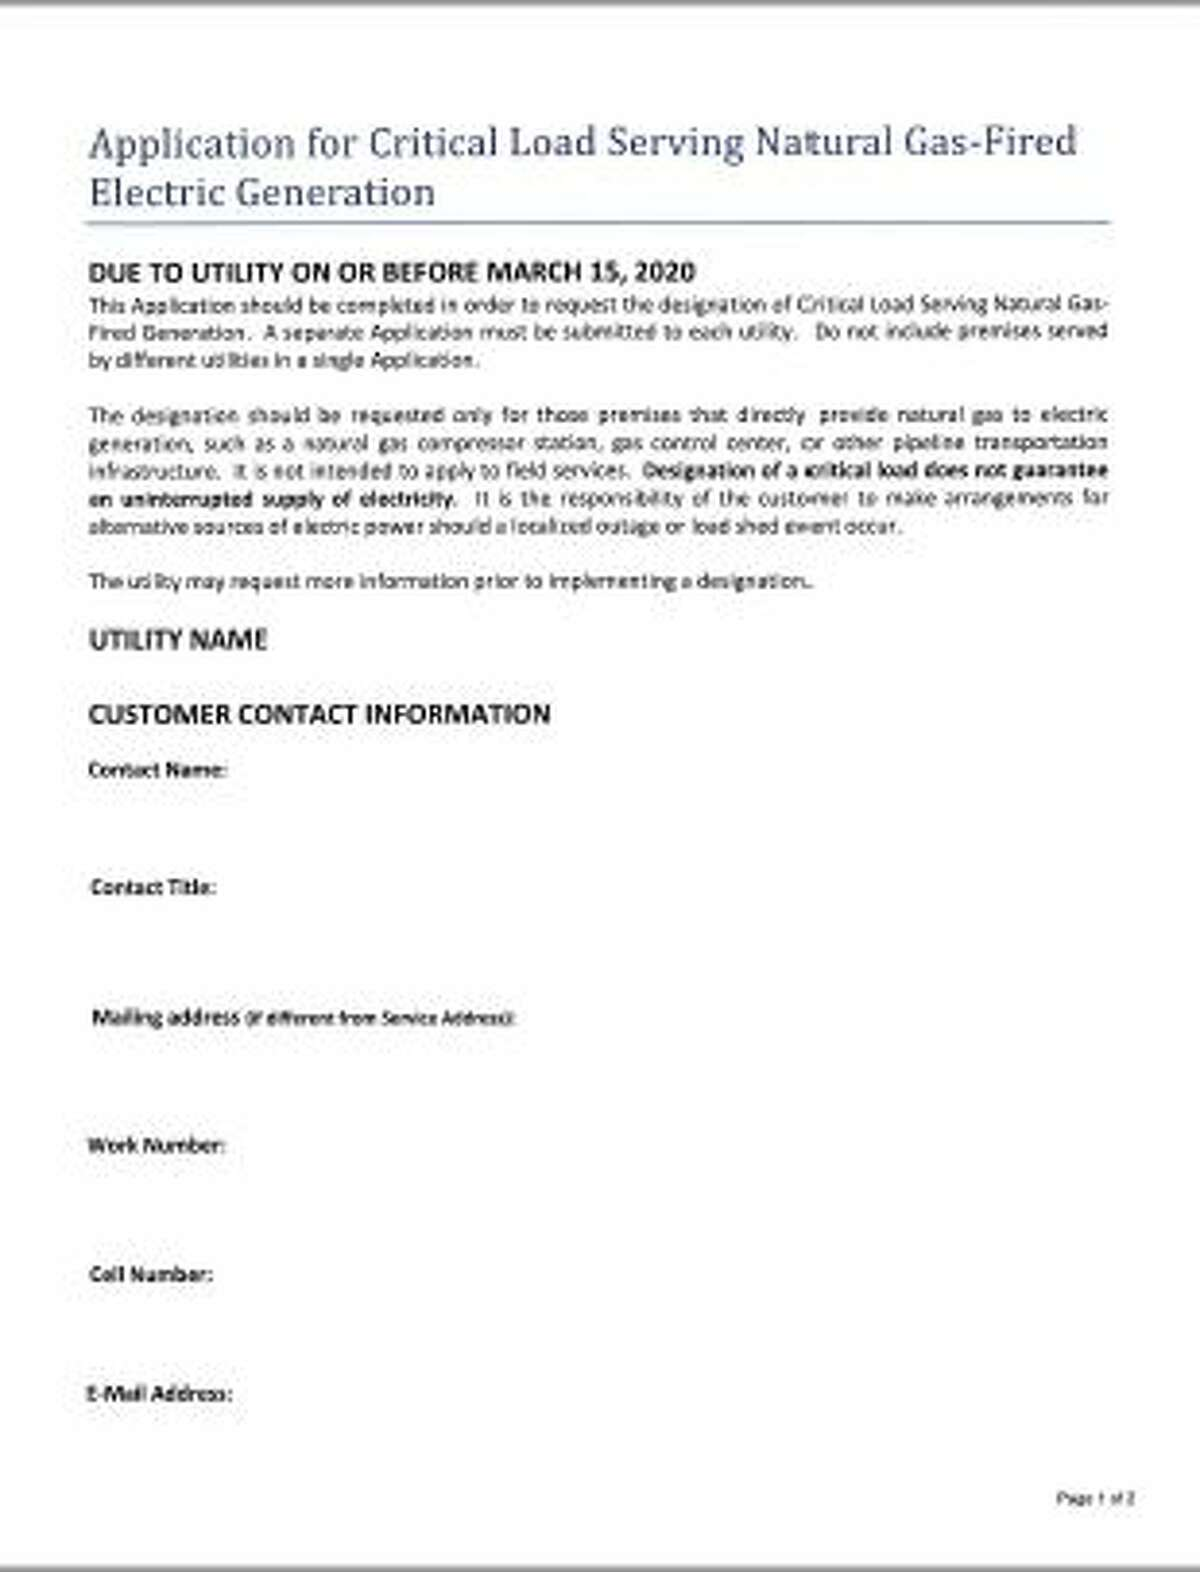 The two-page ERCOT form has been revised since the storm. This is the original version.